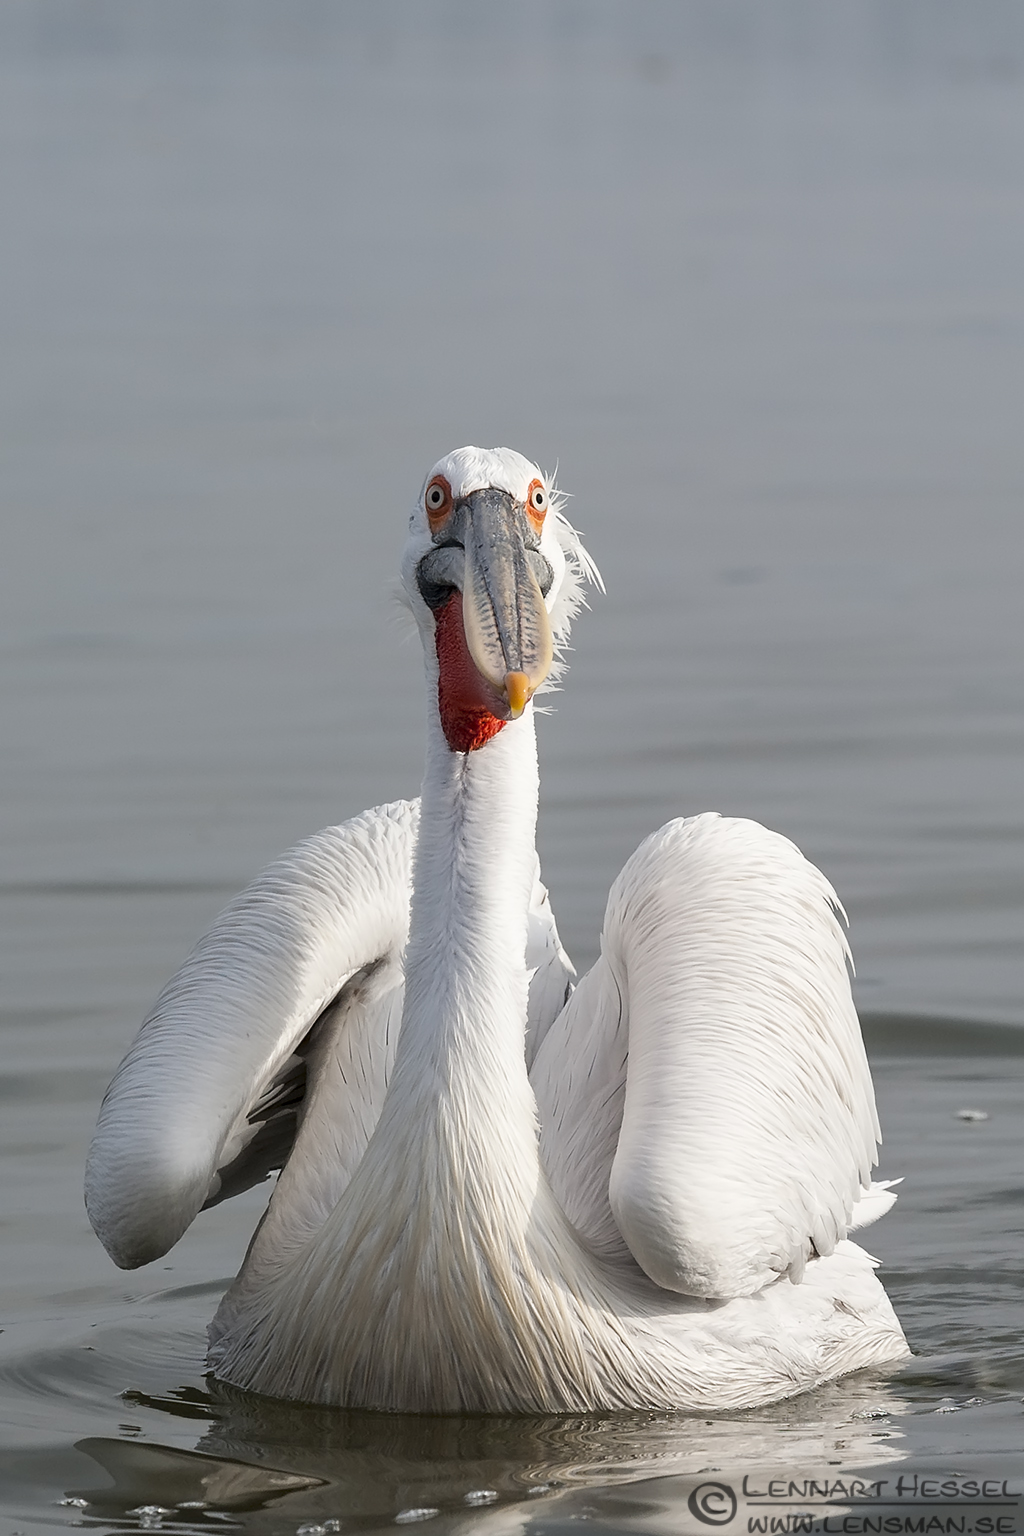 Dalmatian Pelican looking up